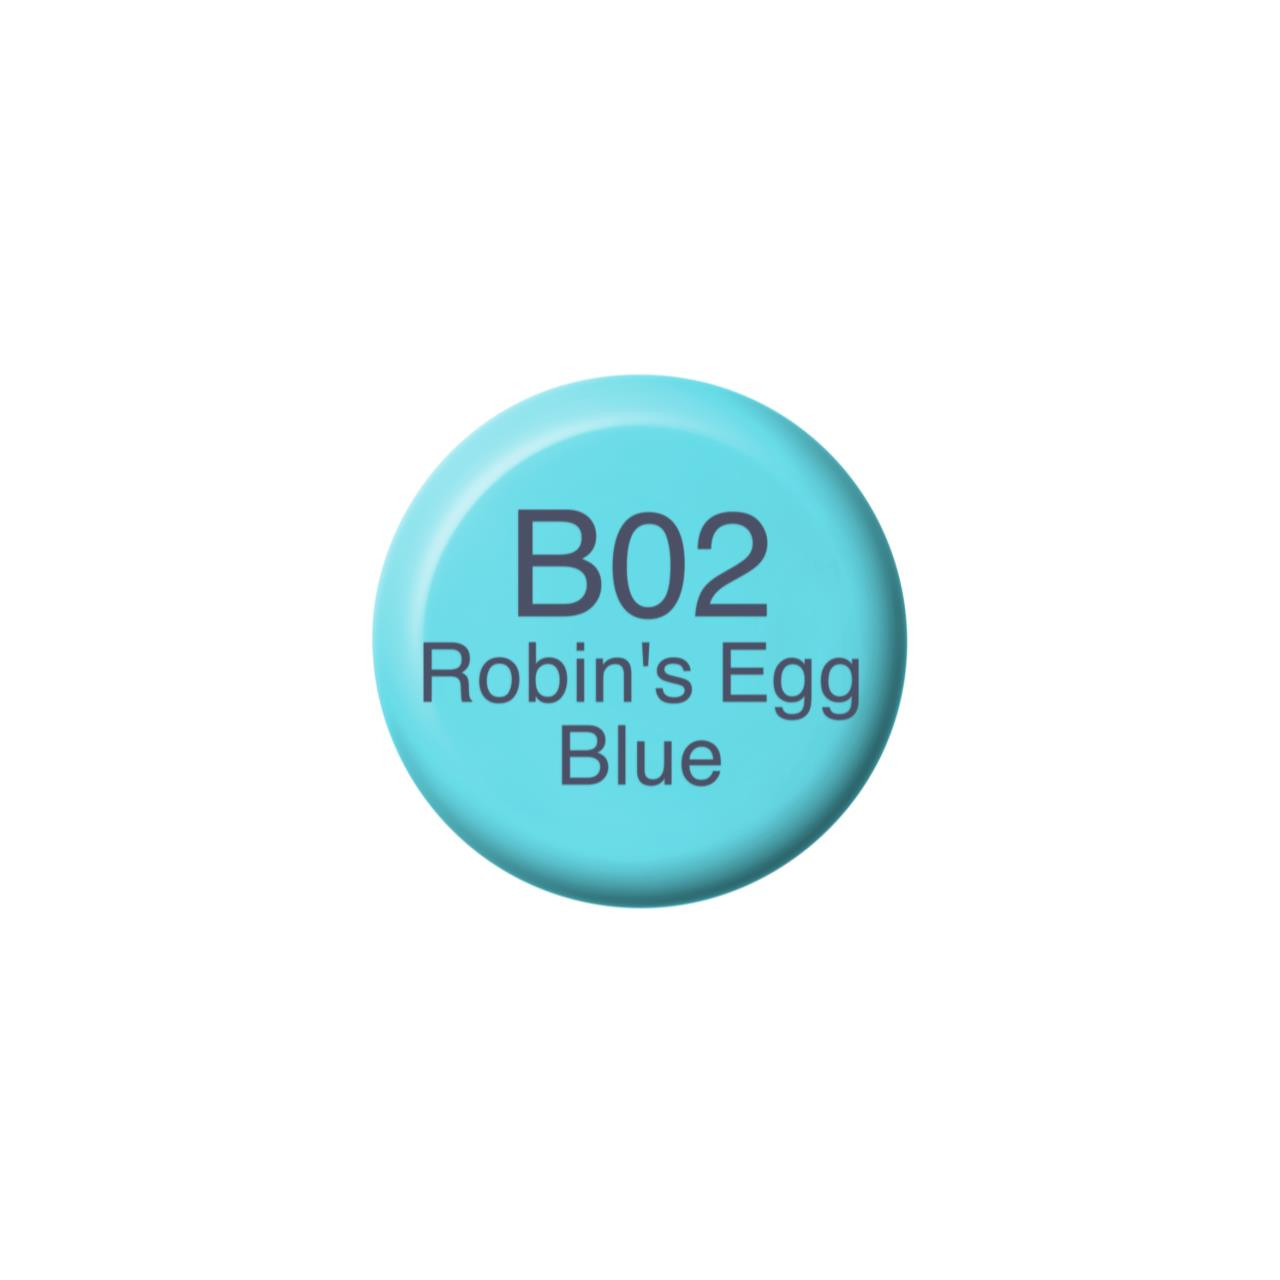 B02 Robin's Egg Blue, Copic Ink - 4511338055847